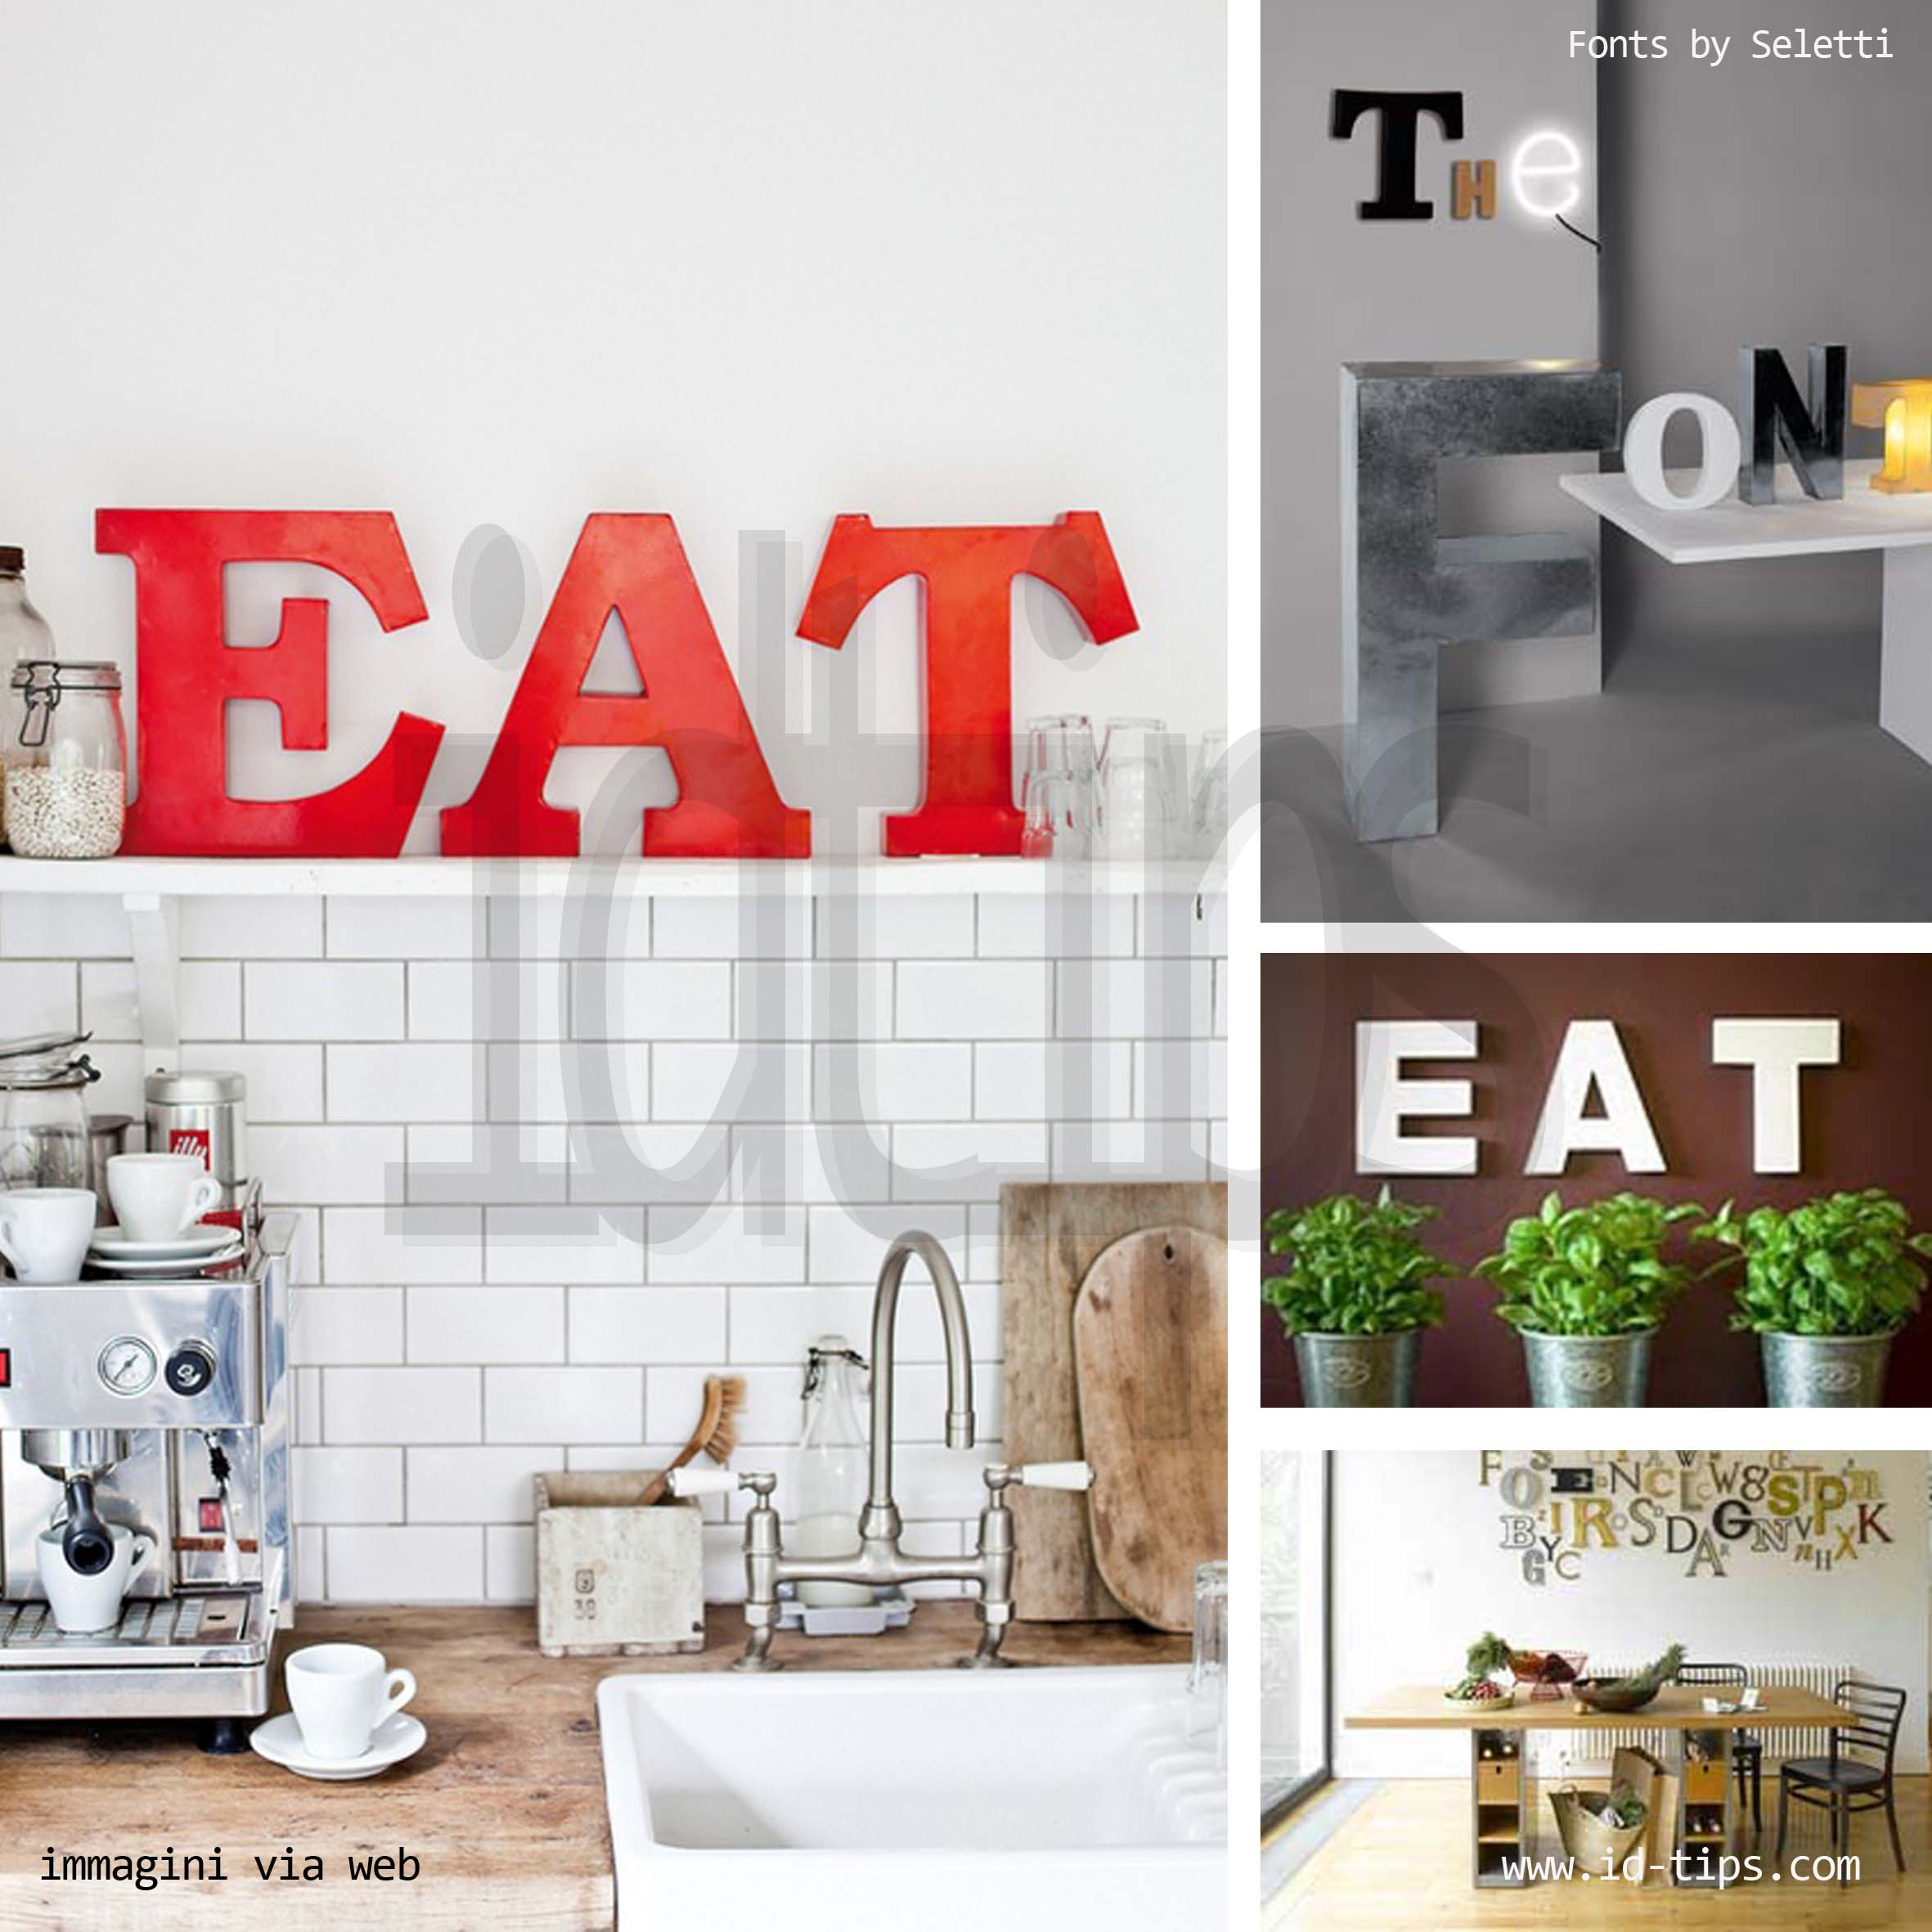 A b c lettering id tips interior design tips blog - Nastri adesivi decorativi per pareti ...